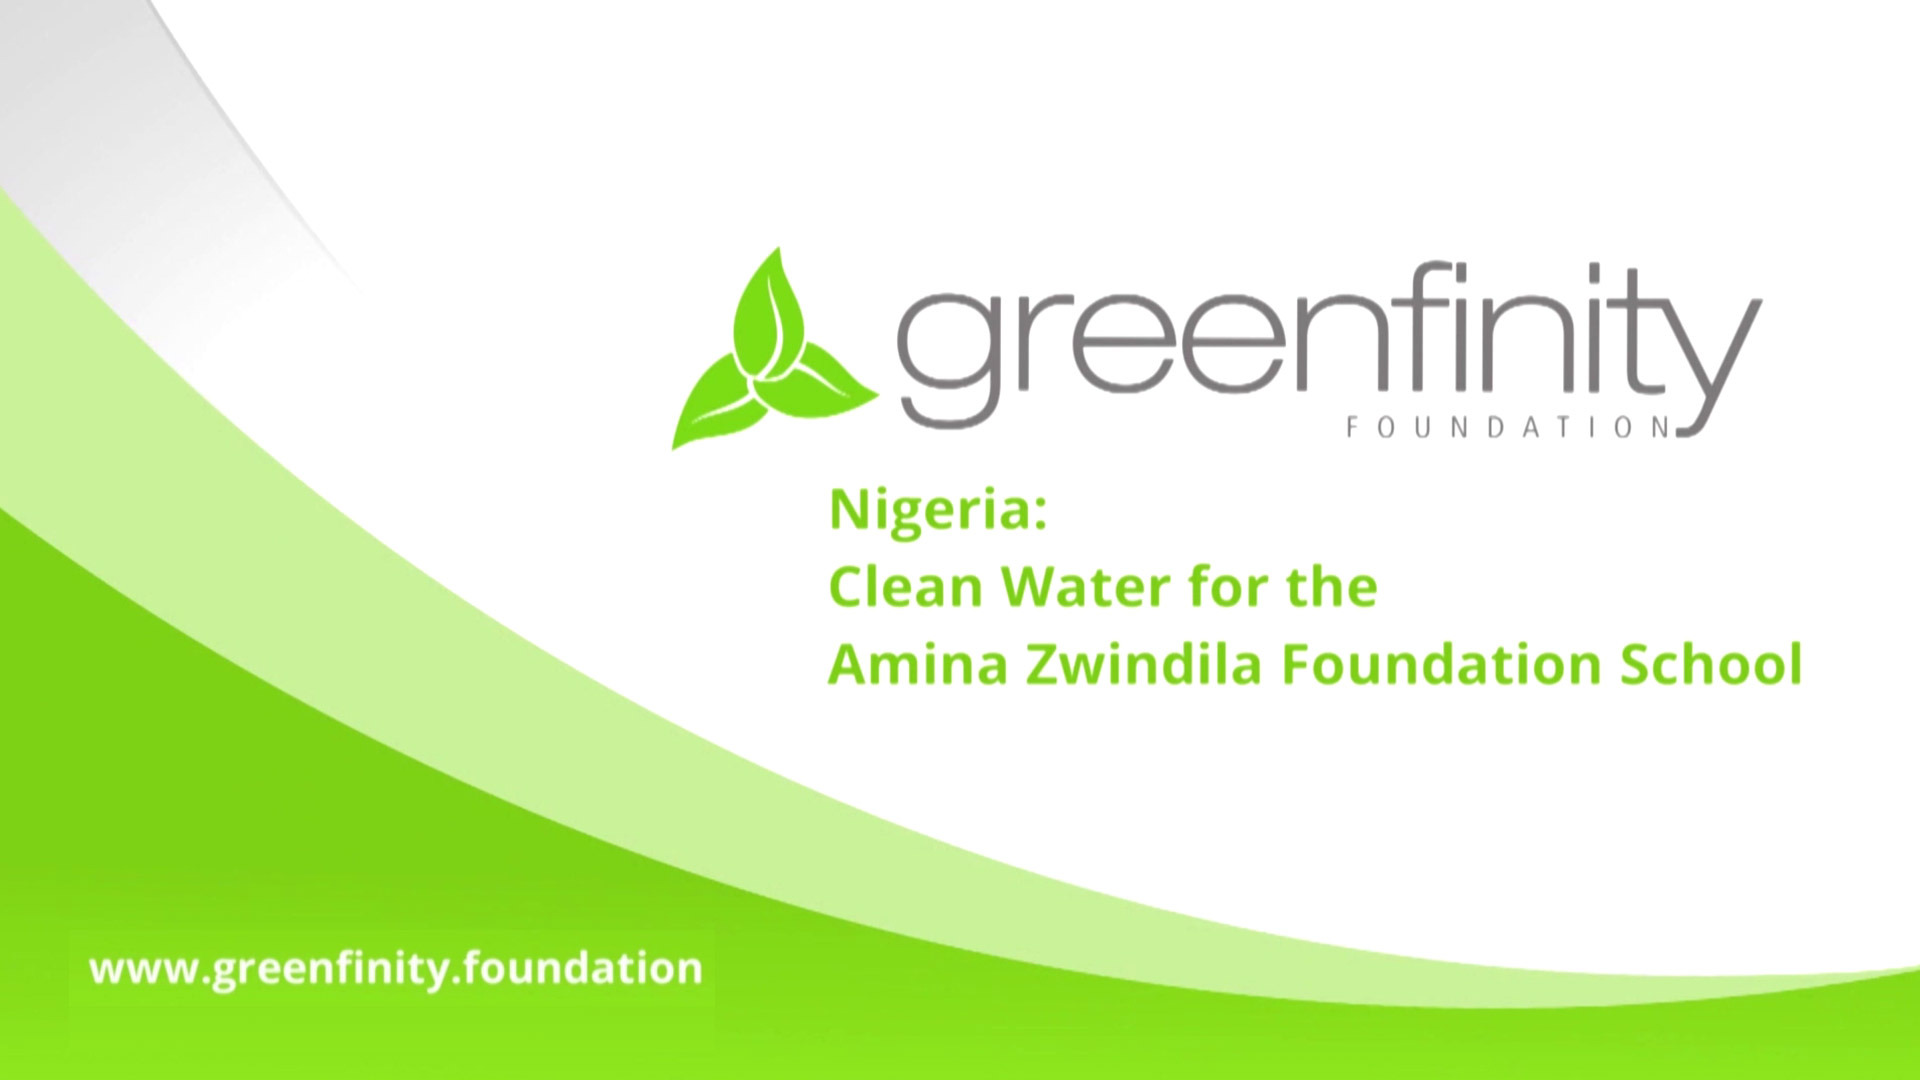 Nigeria: Clean Water for the Amina Zwindila Foundation School